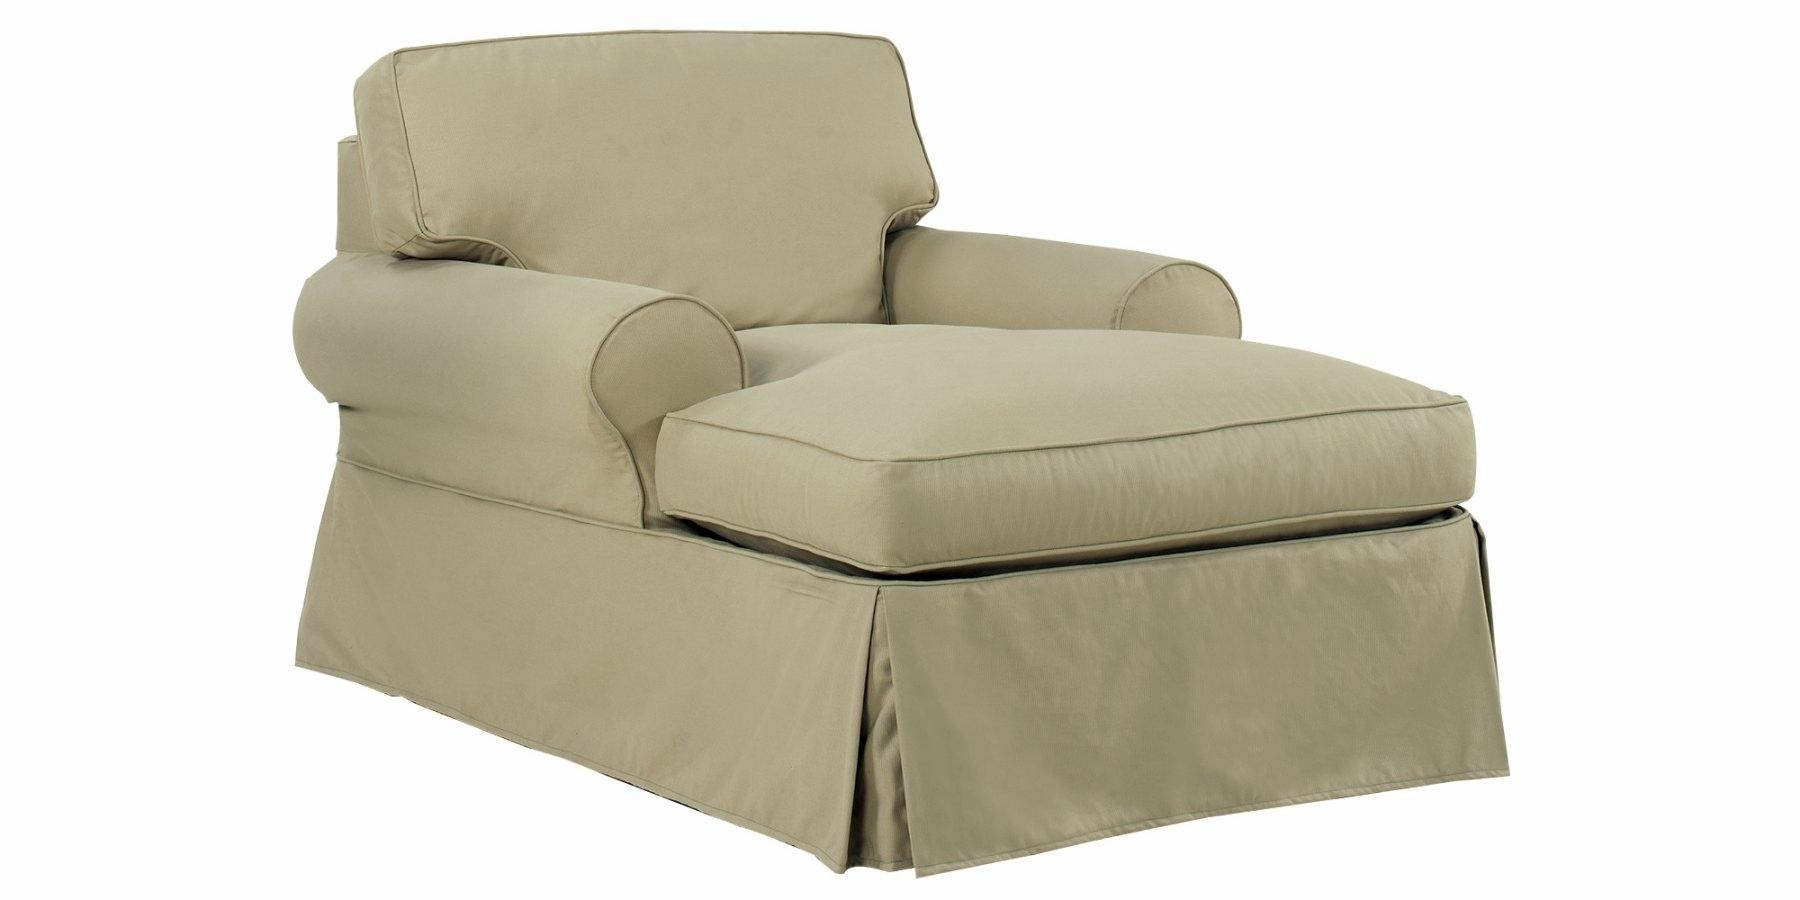 Slipcovered Chaise Lounge Chair | Club Furniture Regarding Slipcovers For Chaise Lounge Sofas (Image 17 of 20)